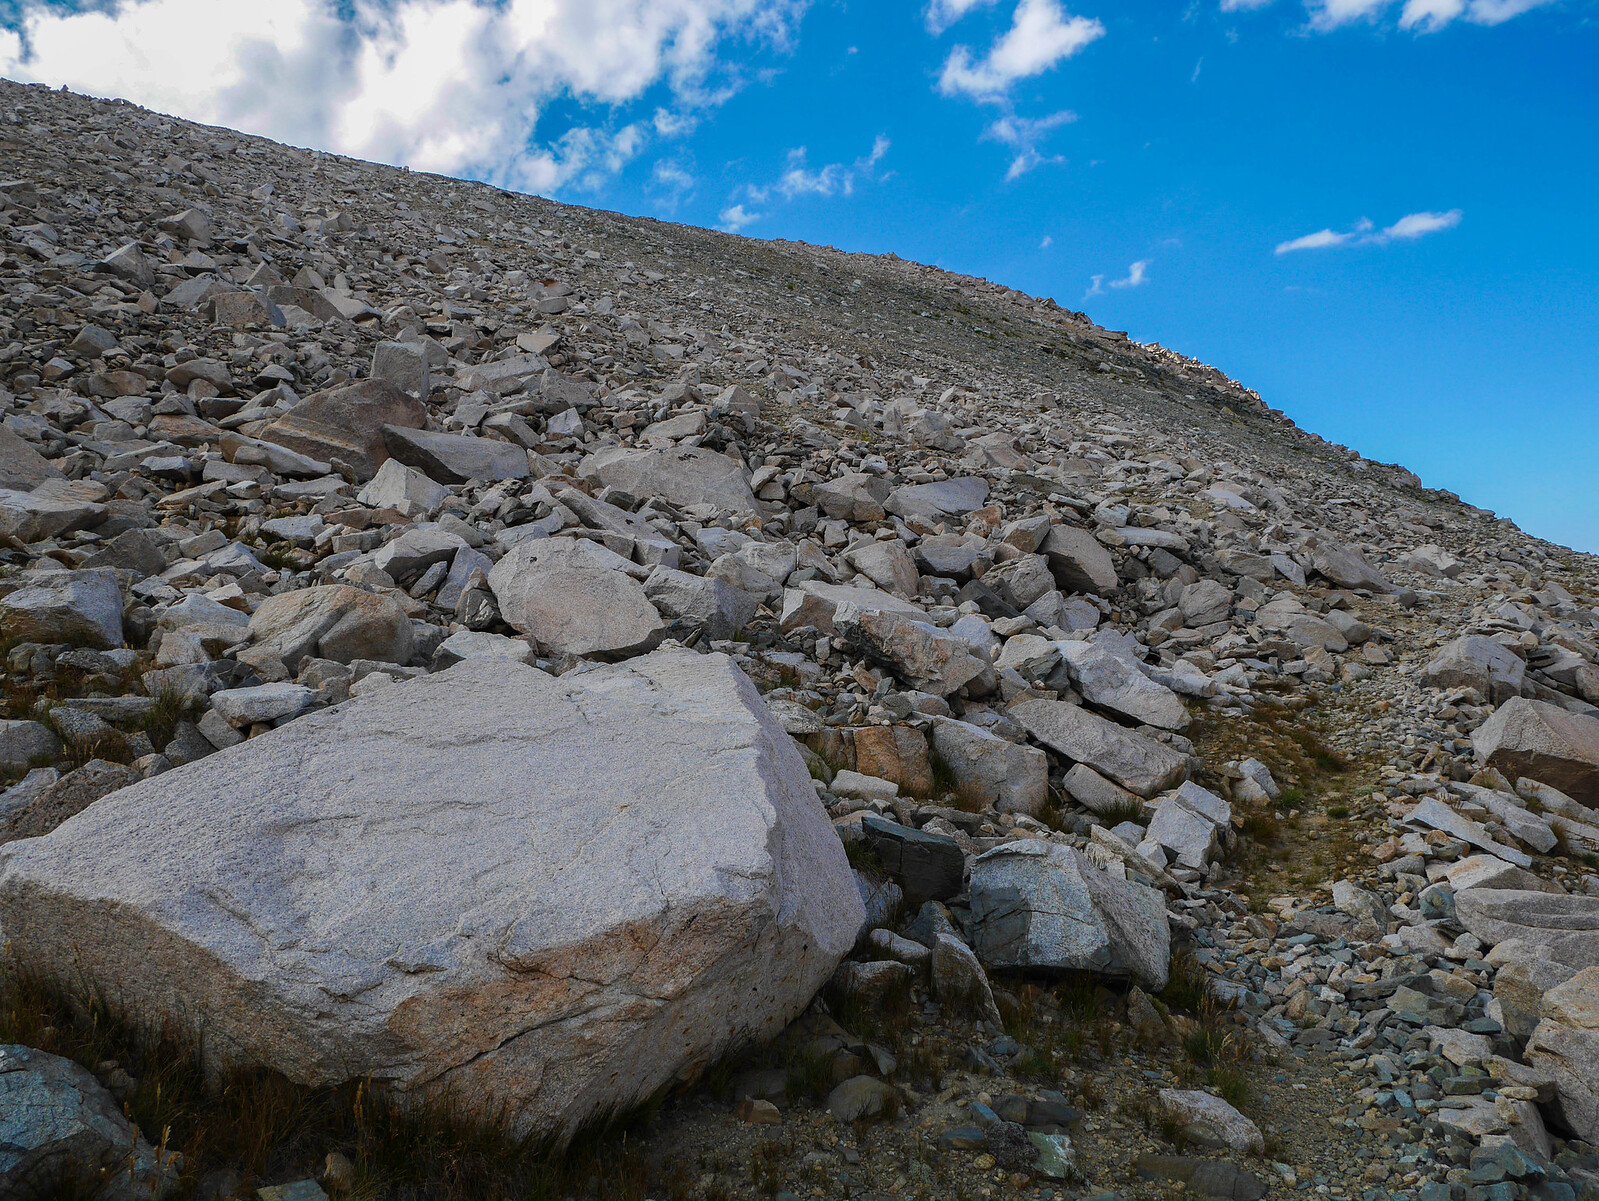 Use trail through talus up to Junction Pass